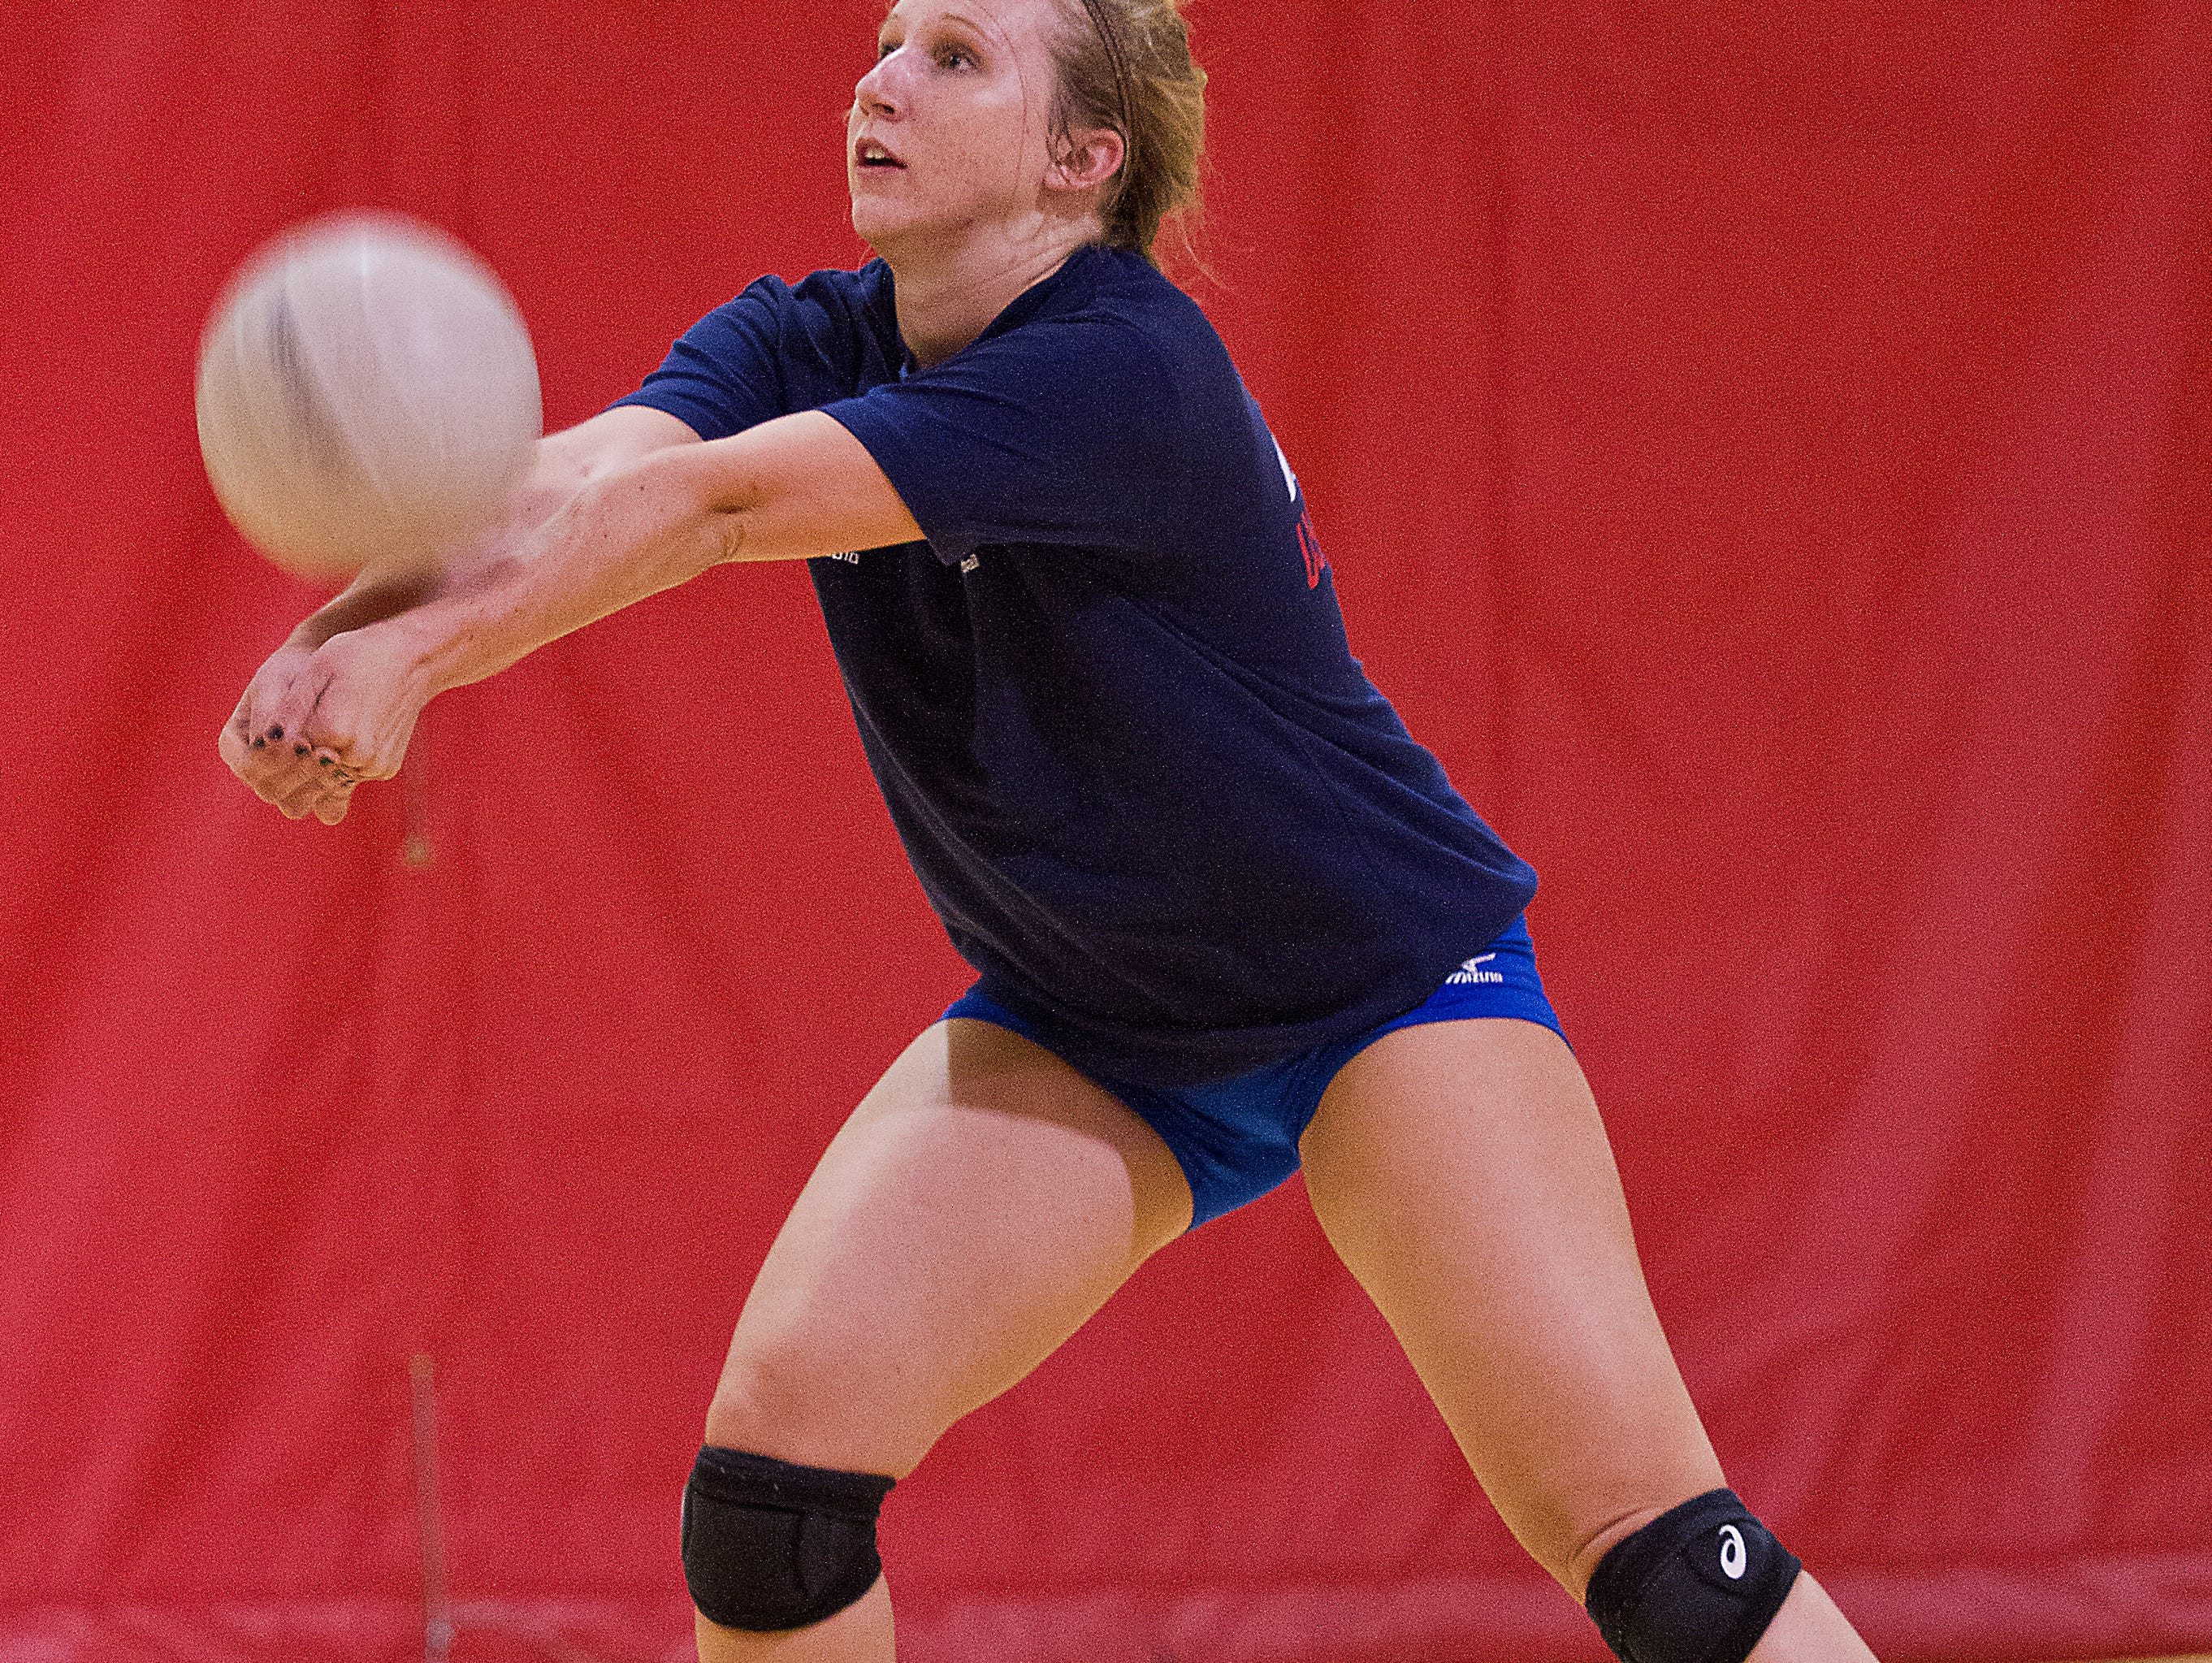 Emily Moore of ECS in Fort Myers keeps the ball in play during a volleyball team practice drill Monday (10/19/15).